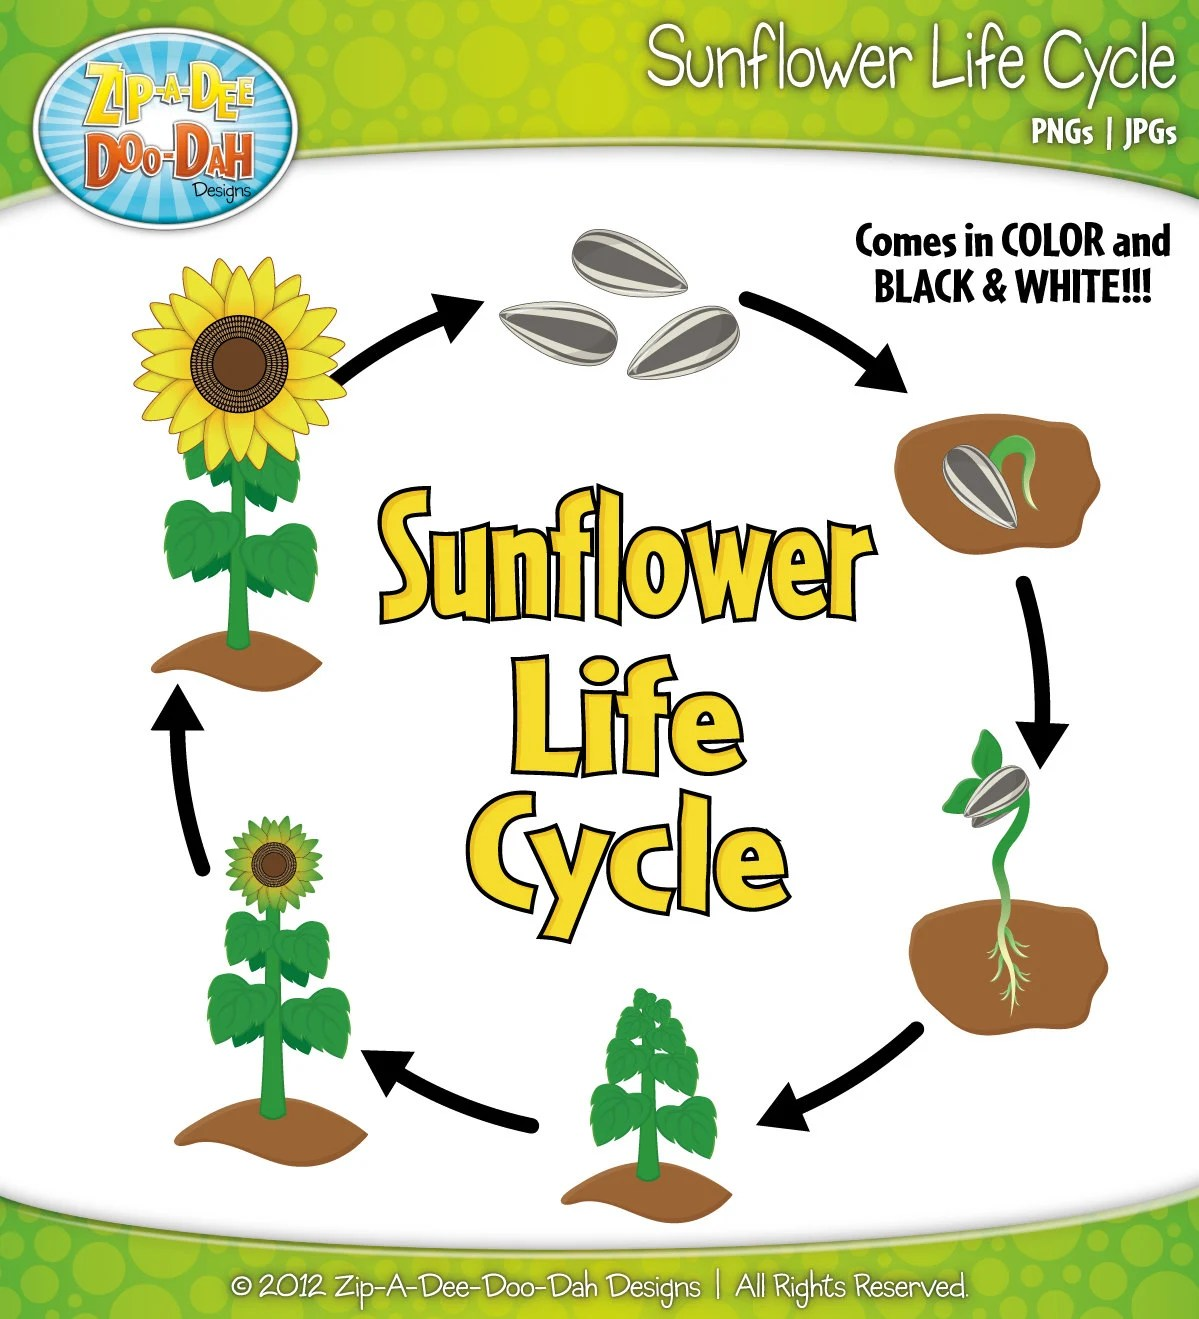 sunflower plant life cycle diagram rv generator transfer switch wiring clipart set includes by